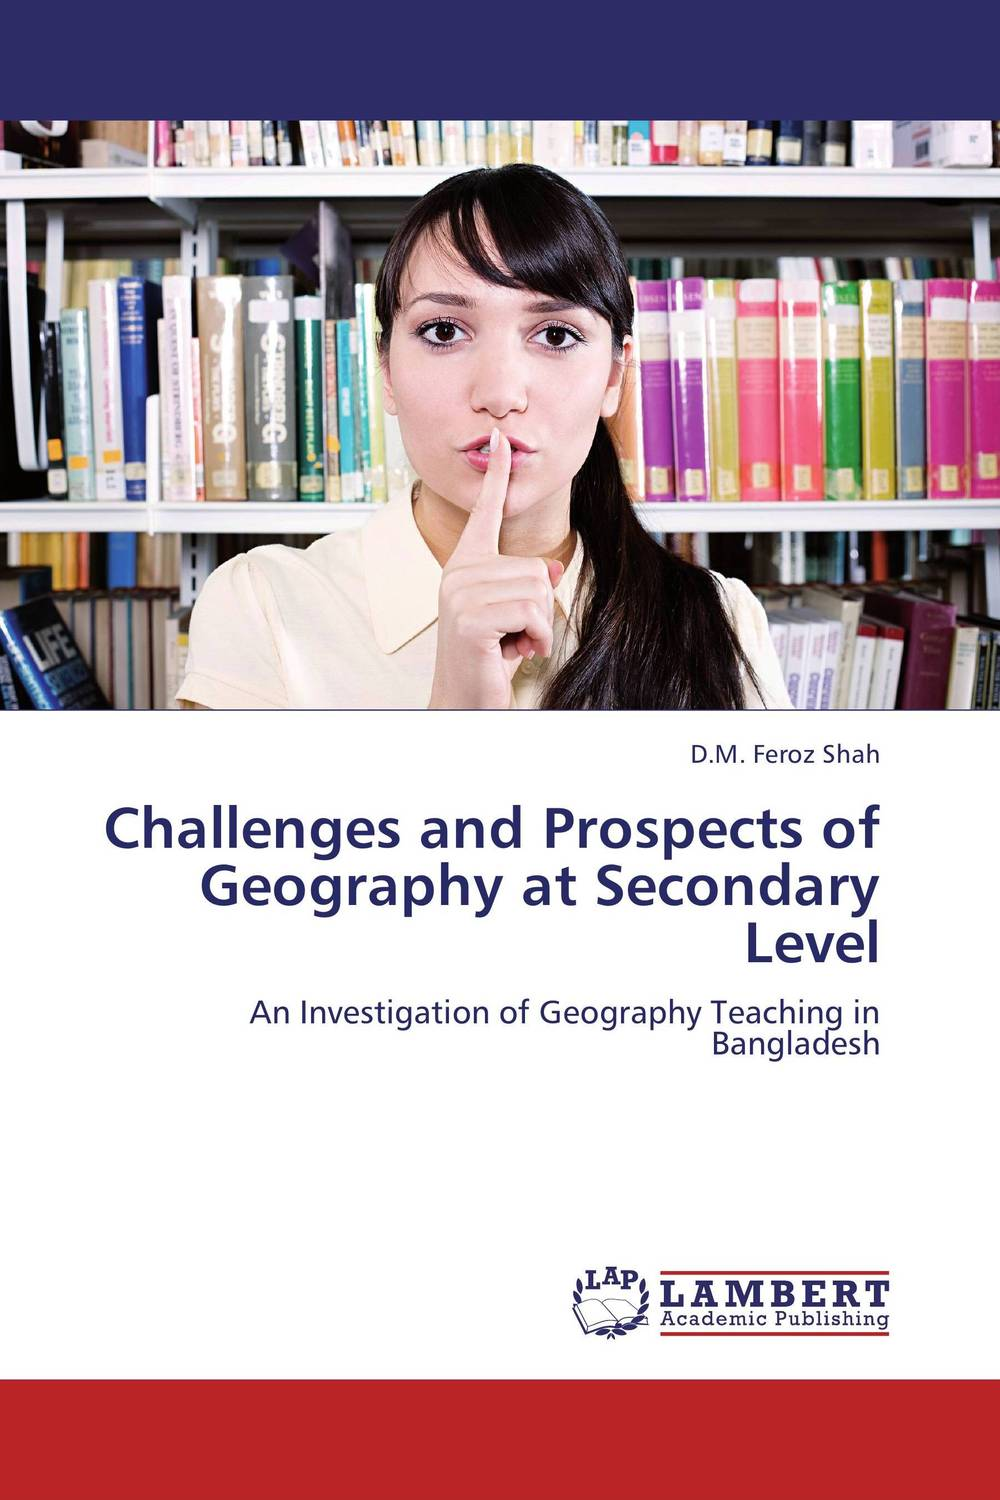 купить Challenges and Prospects of Geography at Secondary Level недорого